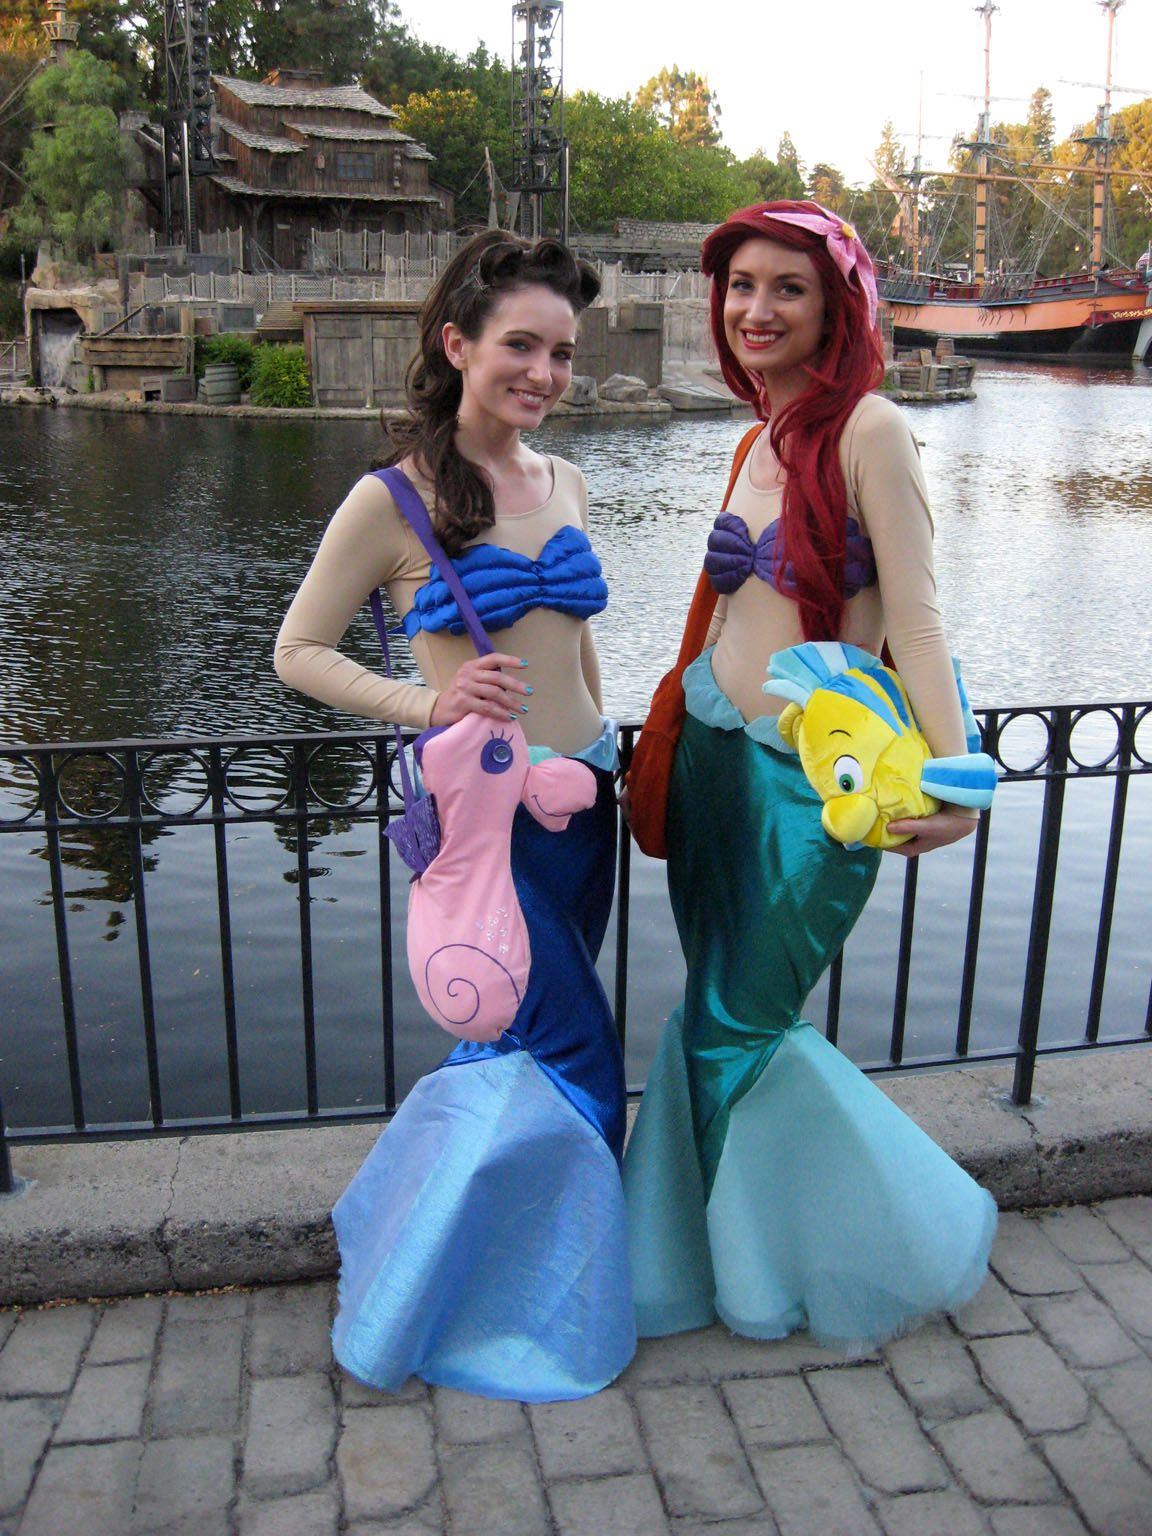 The Little Mermaid Ariel and Aquata Costume cosplay with Flounder ...